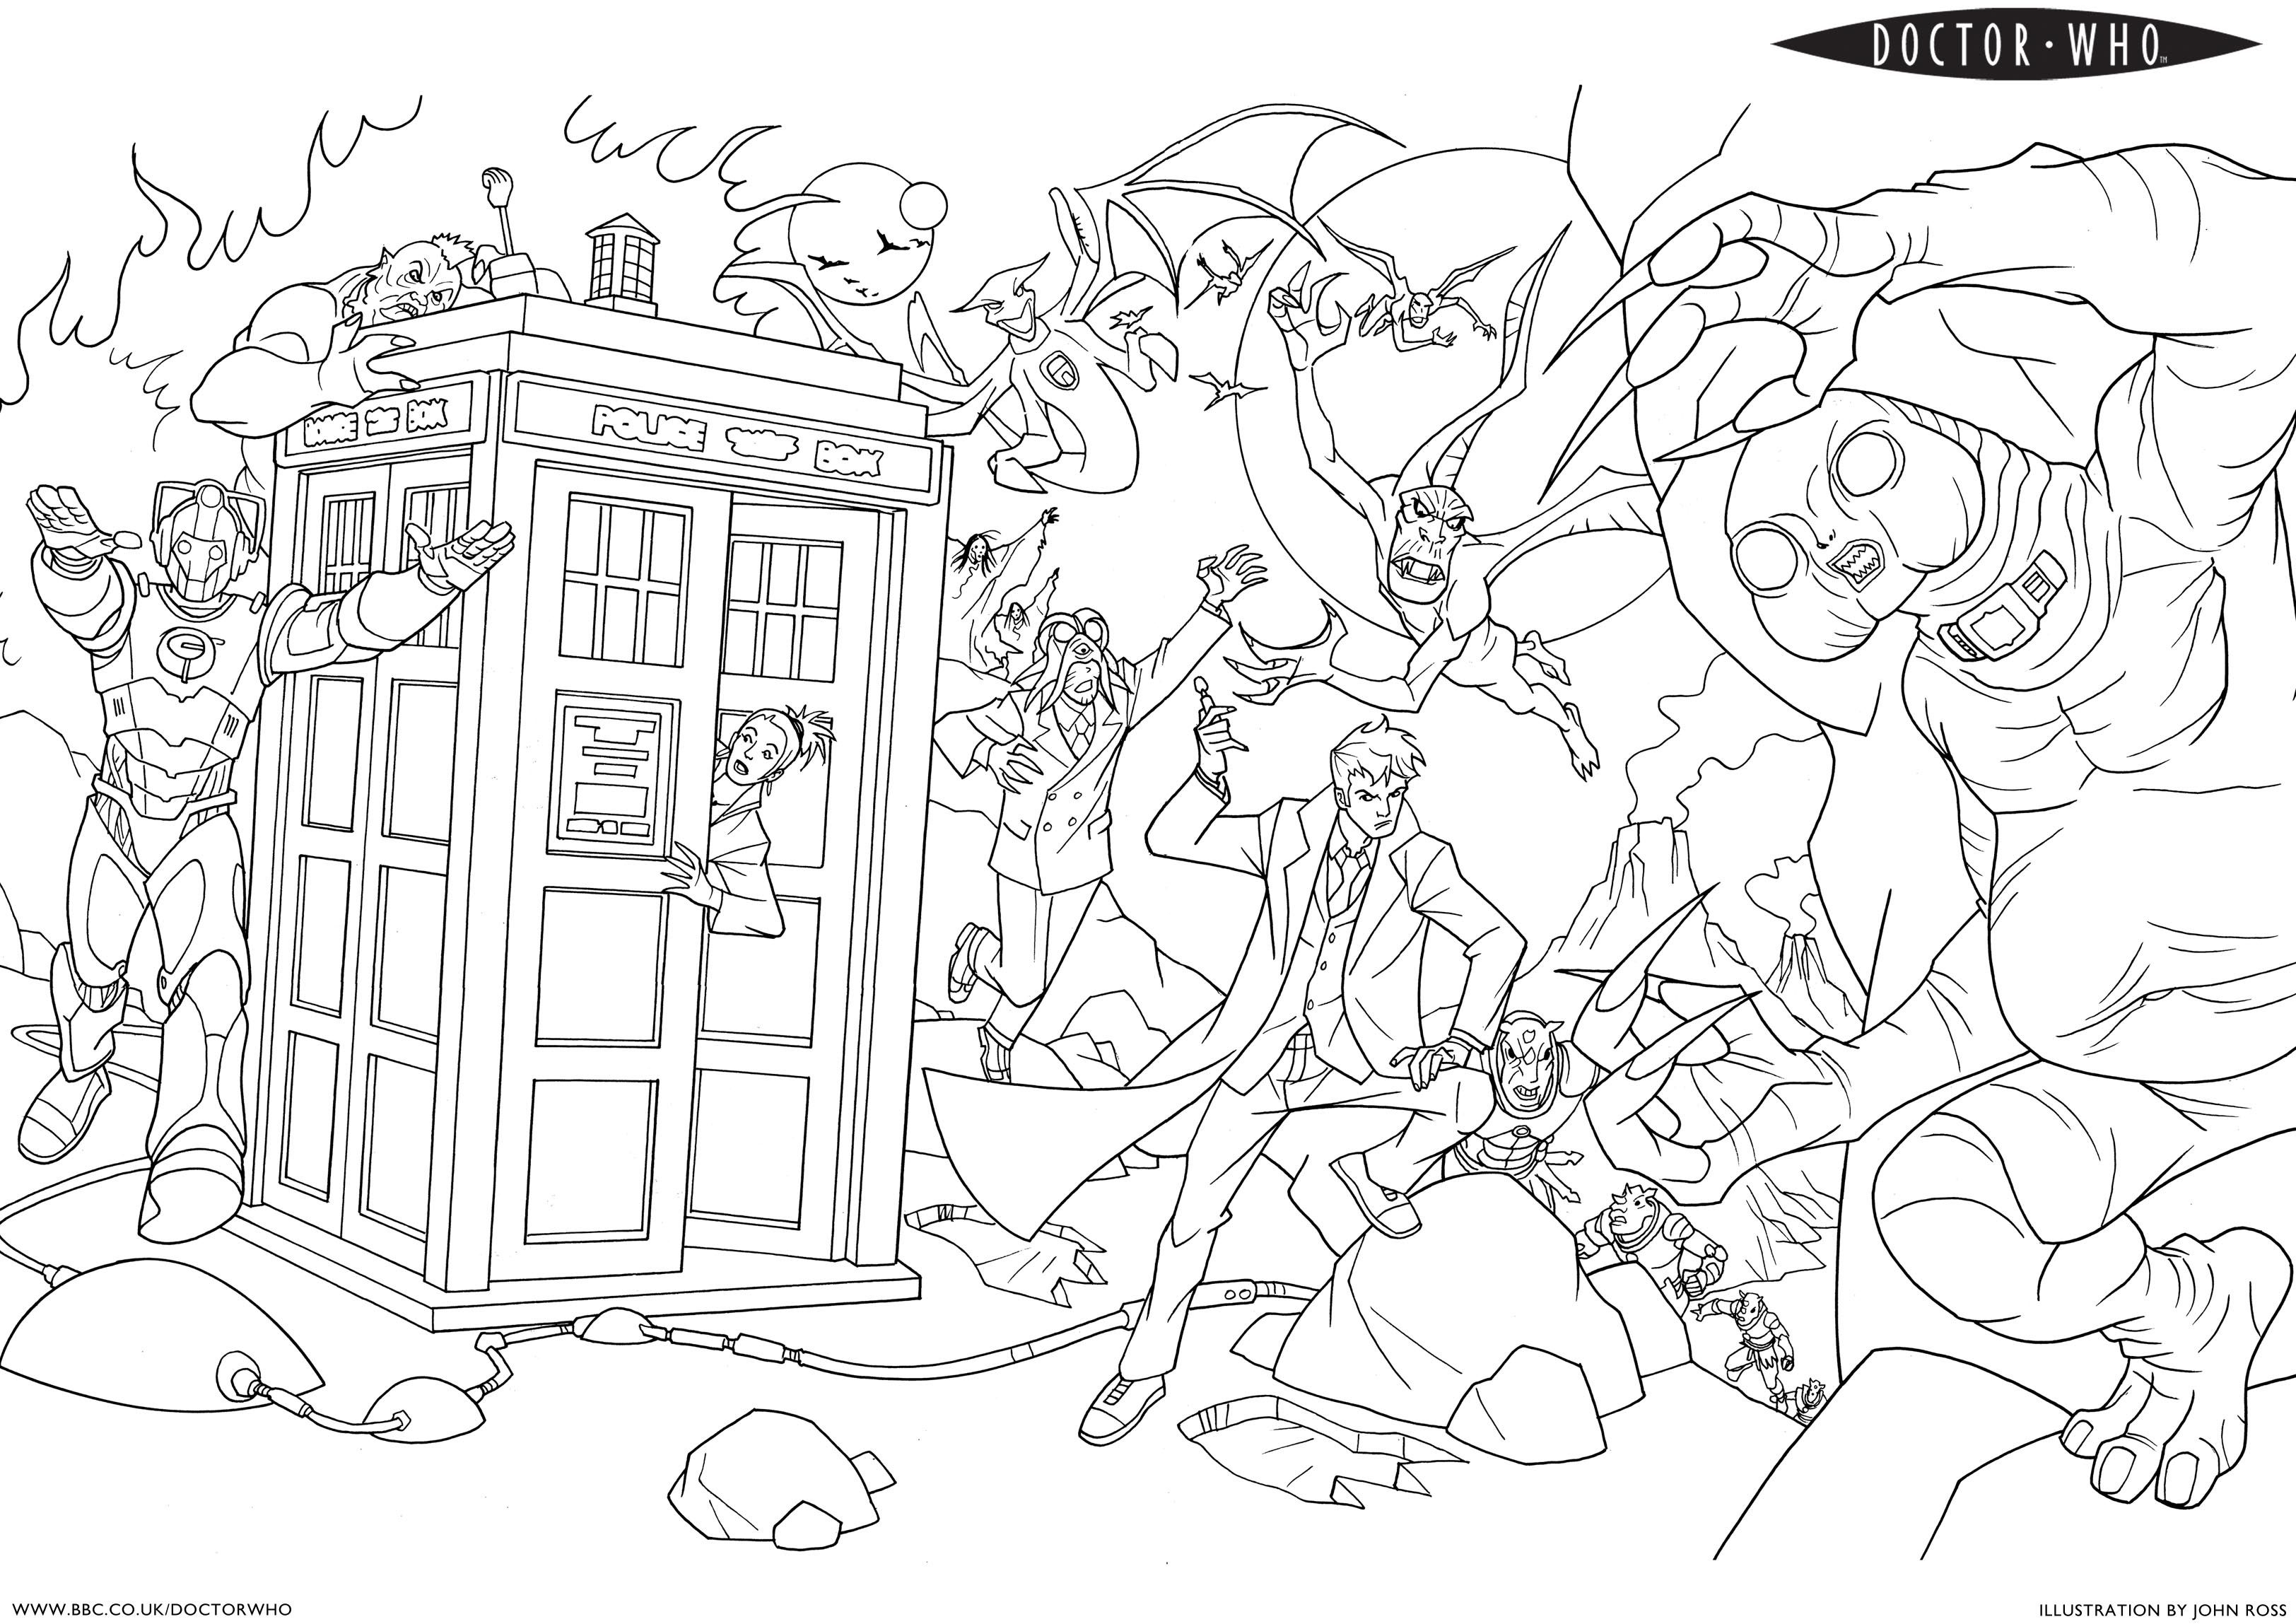 Doctor Who Coloring Page Coloring Ideas Astonishing Dr Who Coloring Pages Image